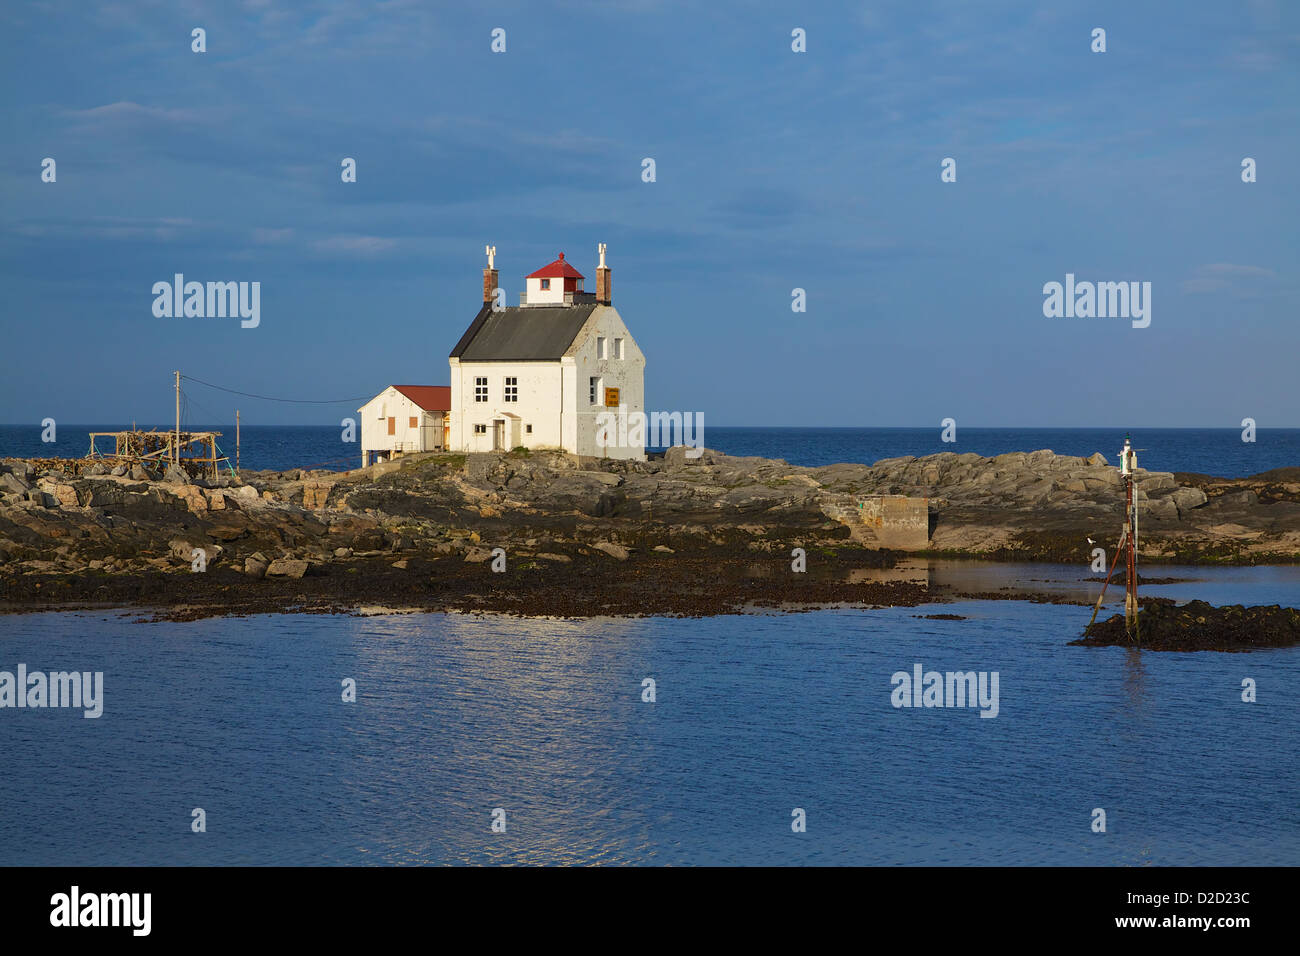 Old lighthouse building in Sorland on Lofoten islands in Norway - Stock Image